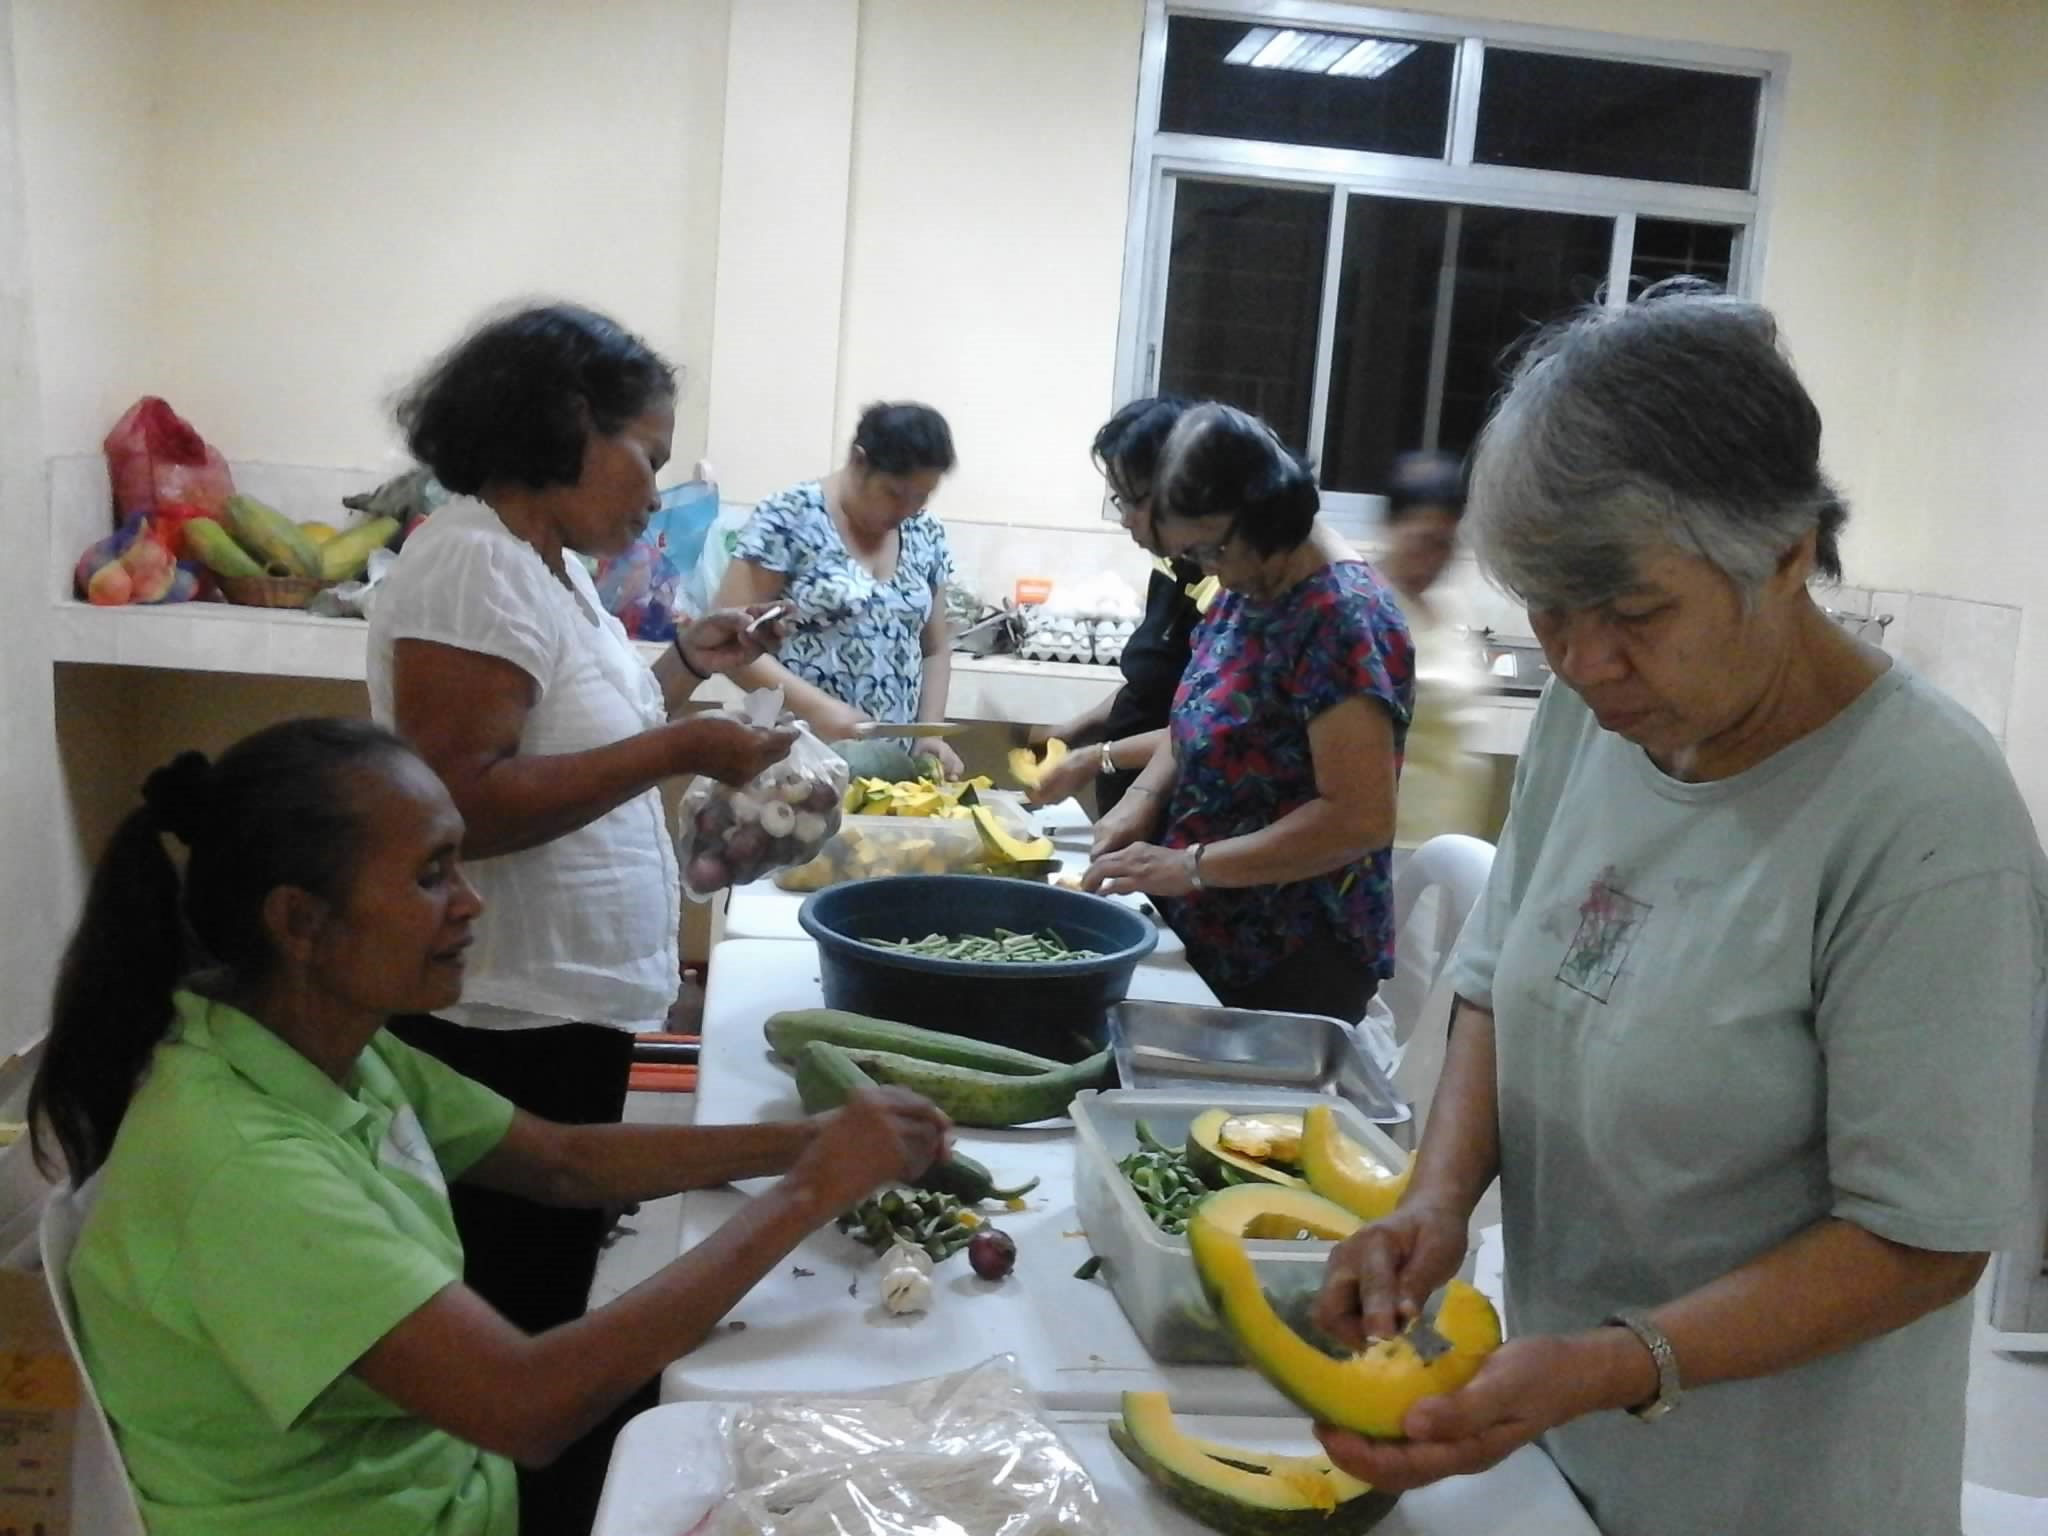 2015 October SSD Central Philippines - Preparing Healthy Meals